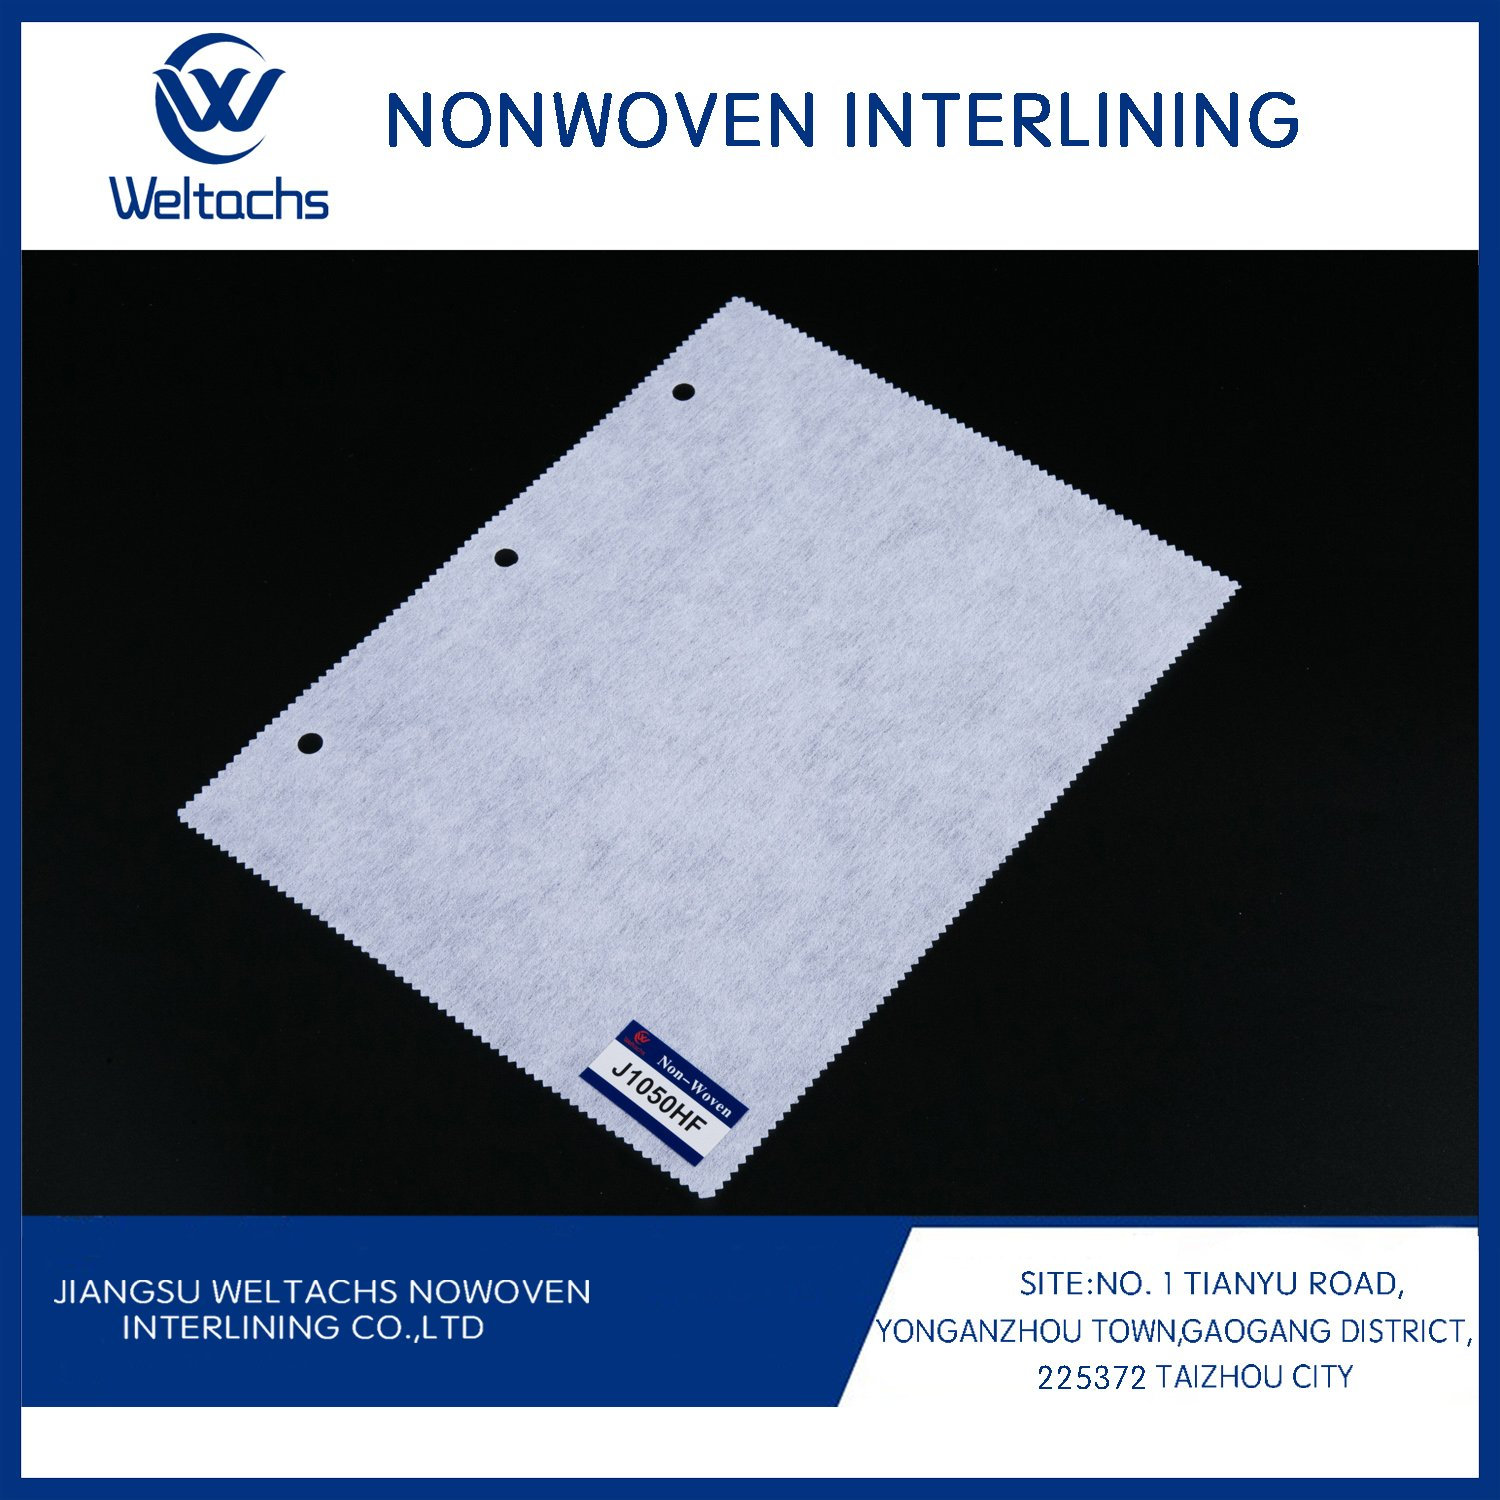 Jiangsu Weltachs Nonwoven Interlining Co., Ltd.